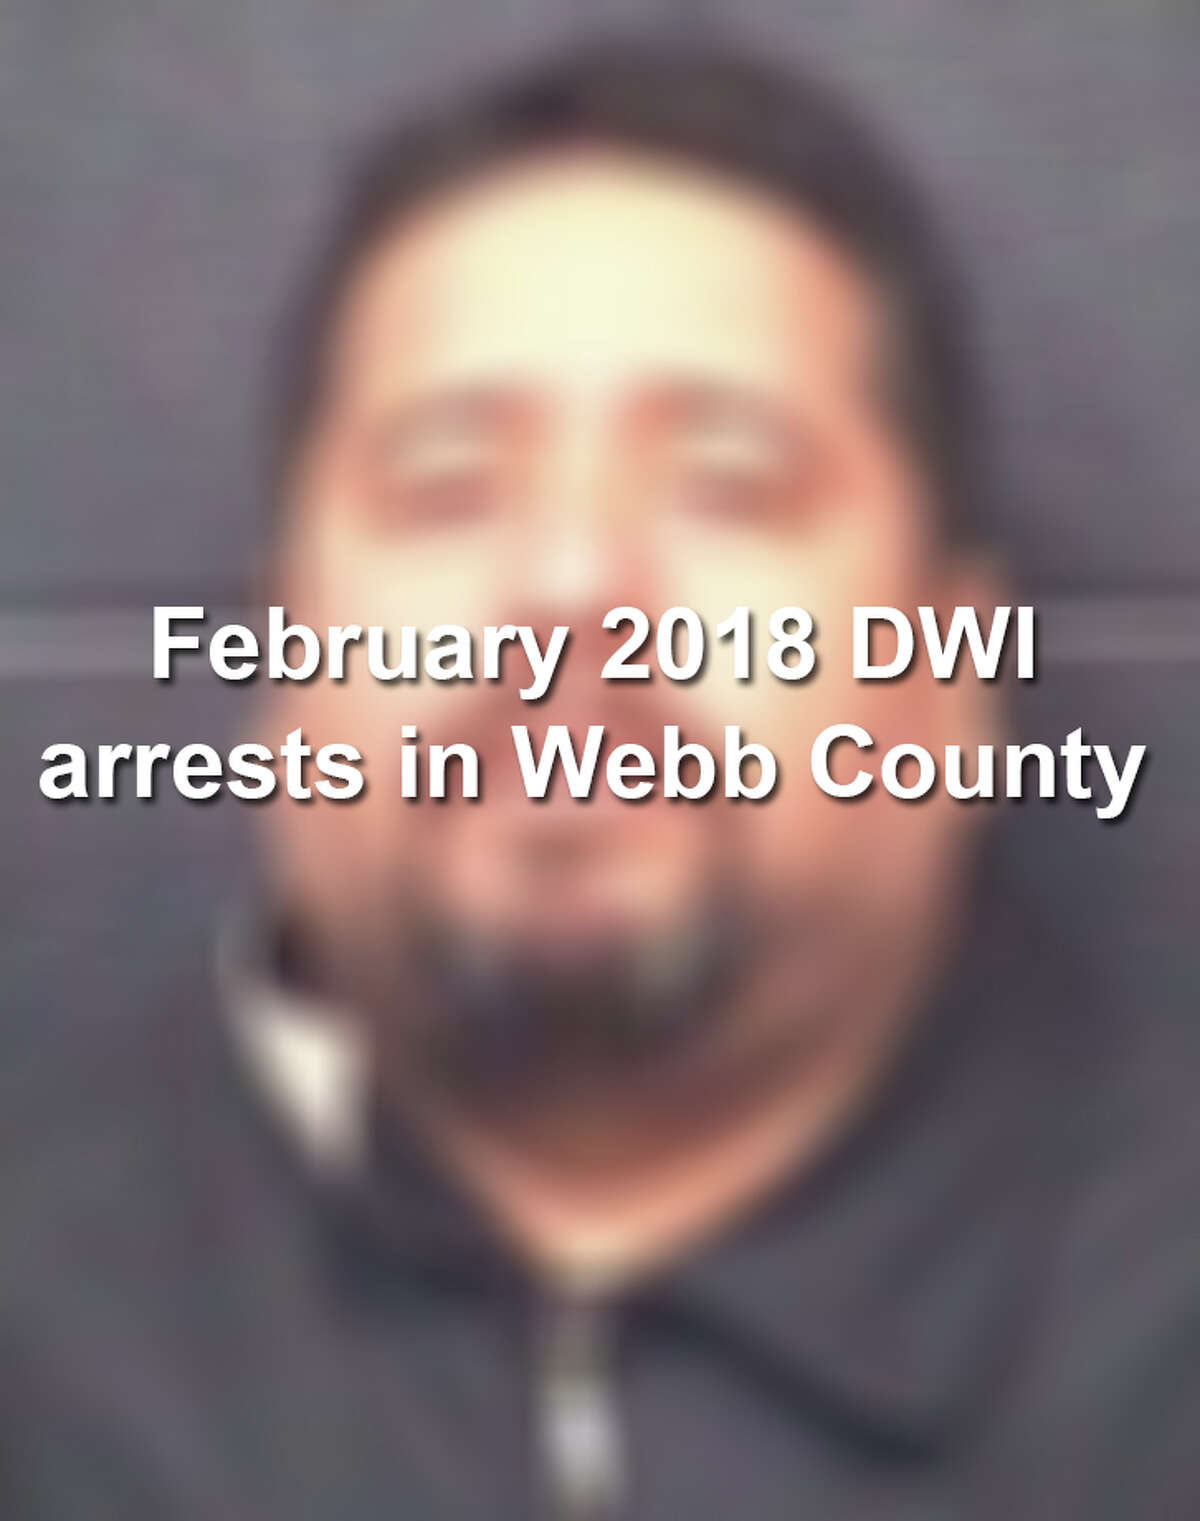 Scroll through to see the individuals arrested for DWI charges in February,